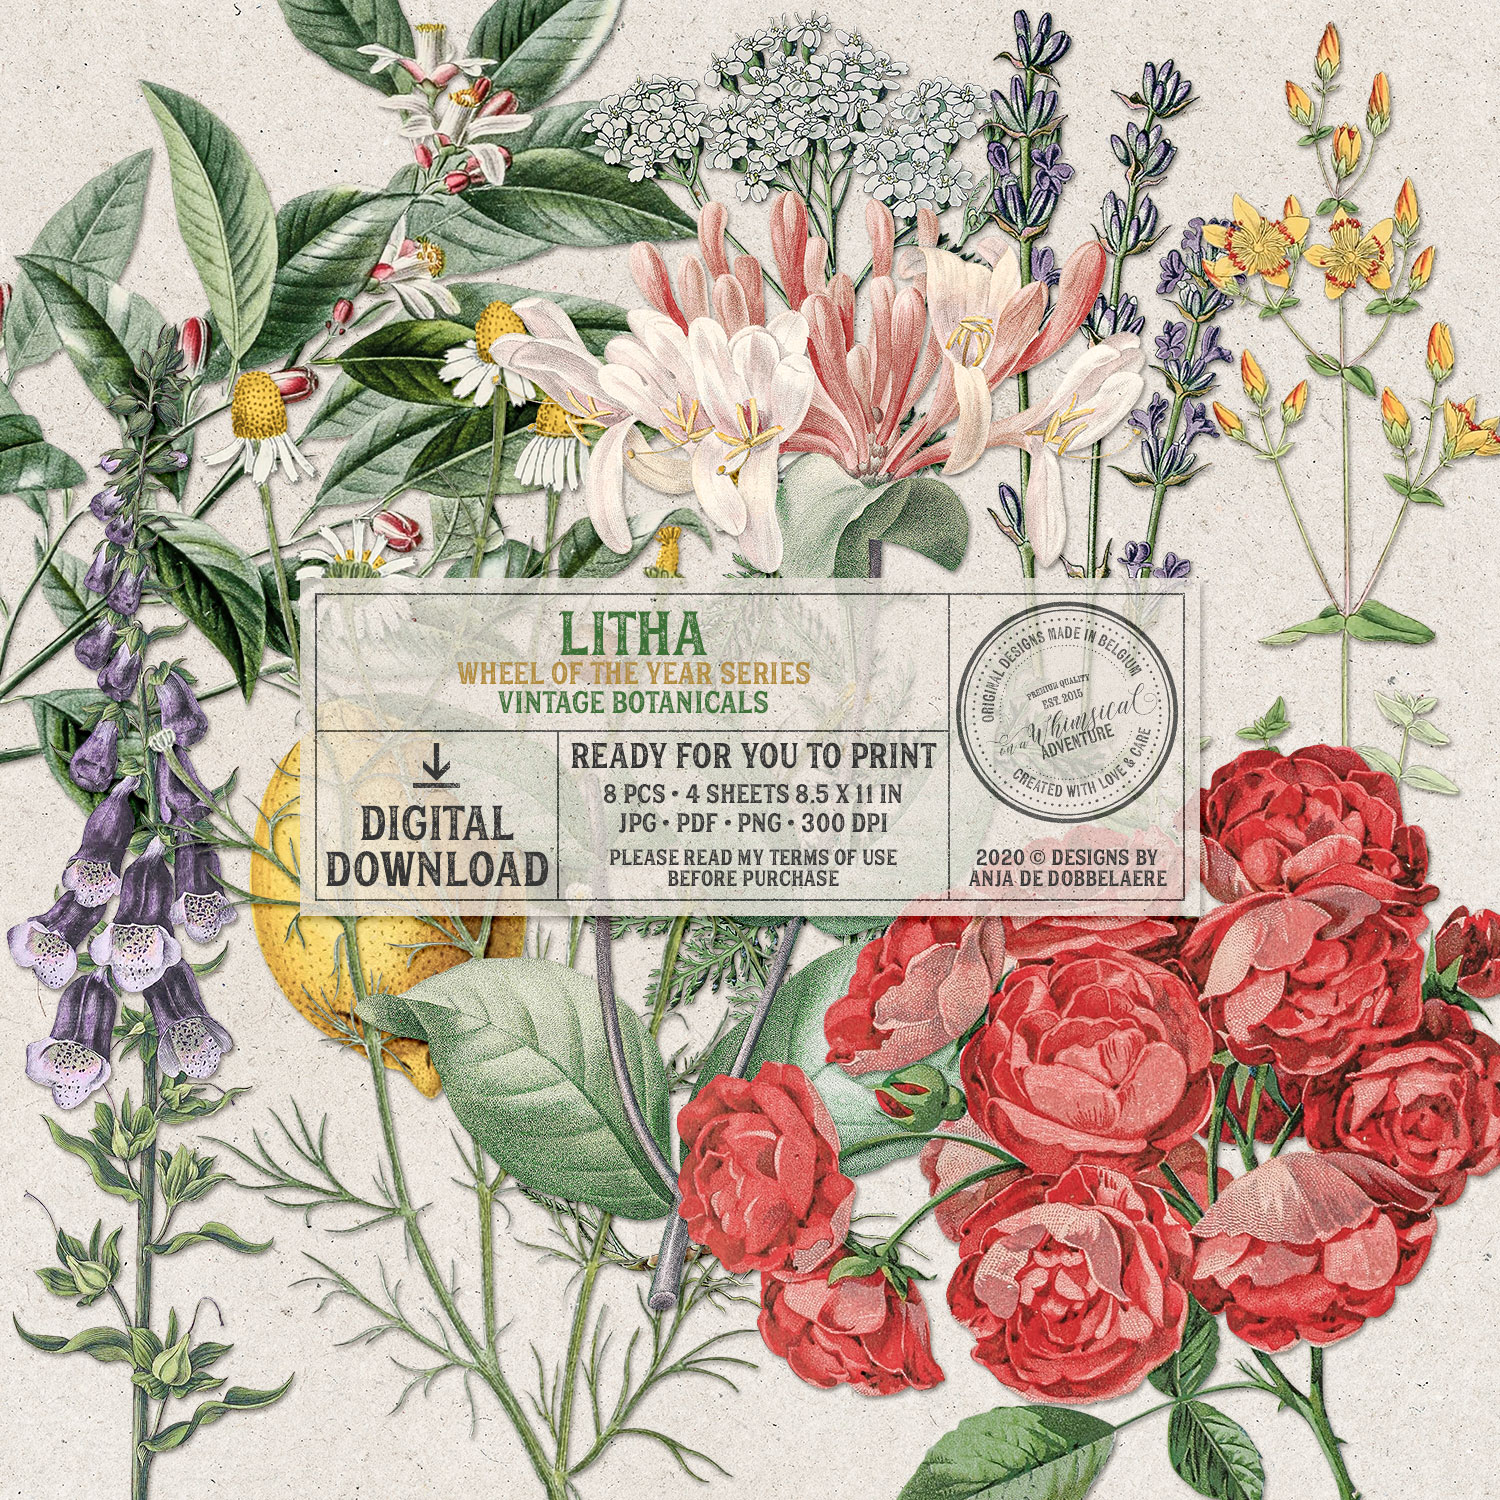 Wheel Of The Year Litha Vintage Botanicals by On A Whimsical Adventure